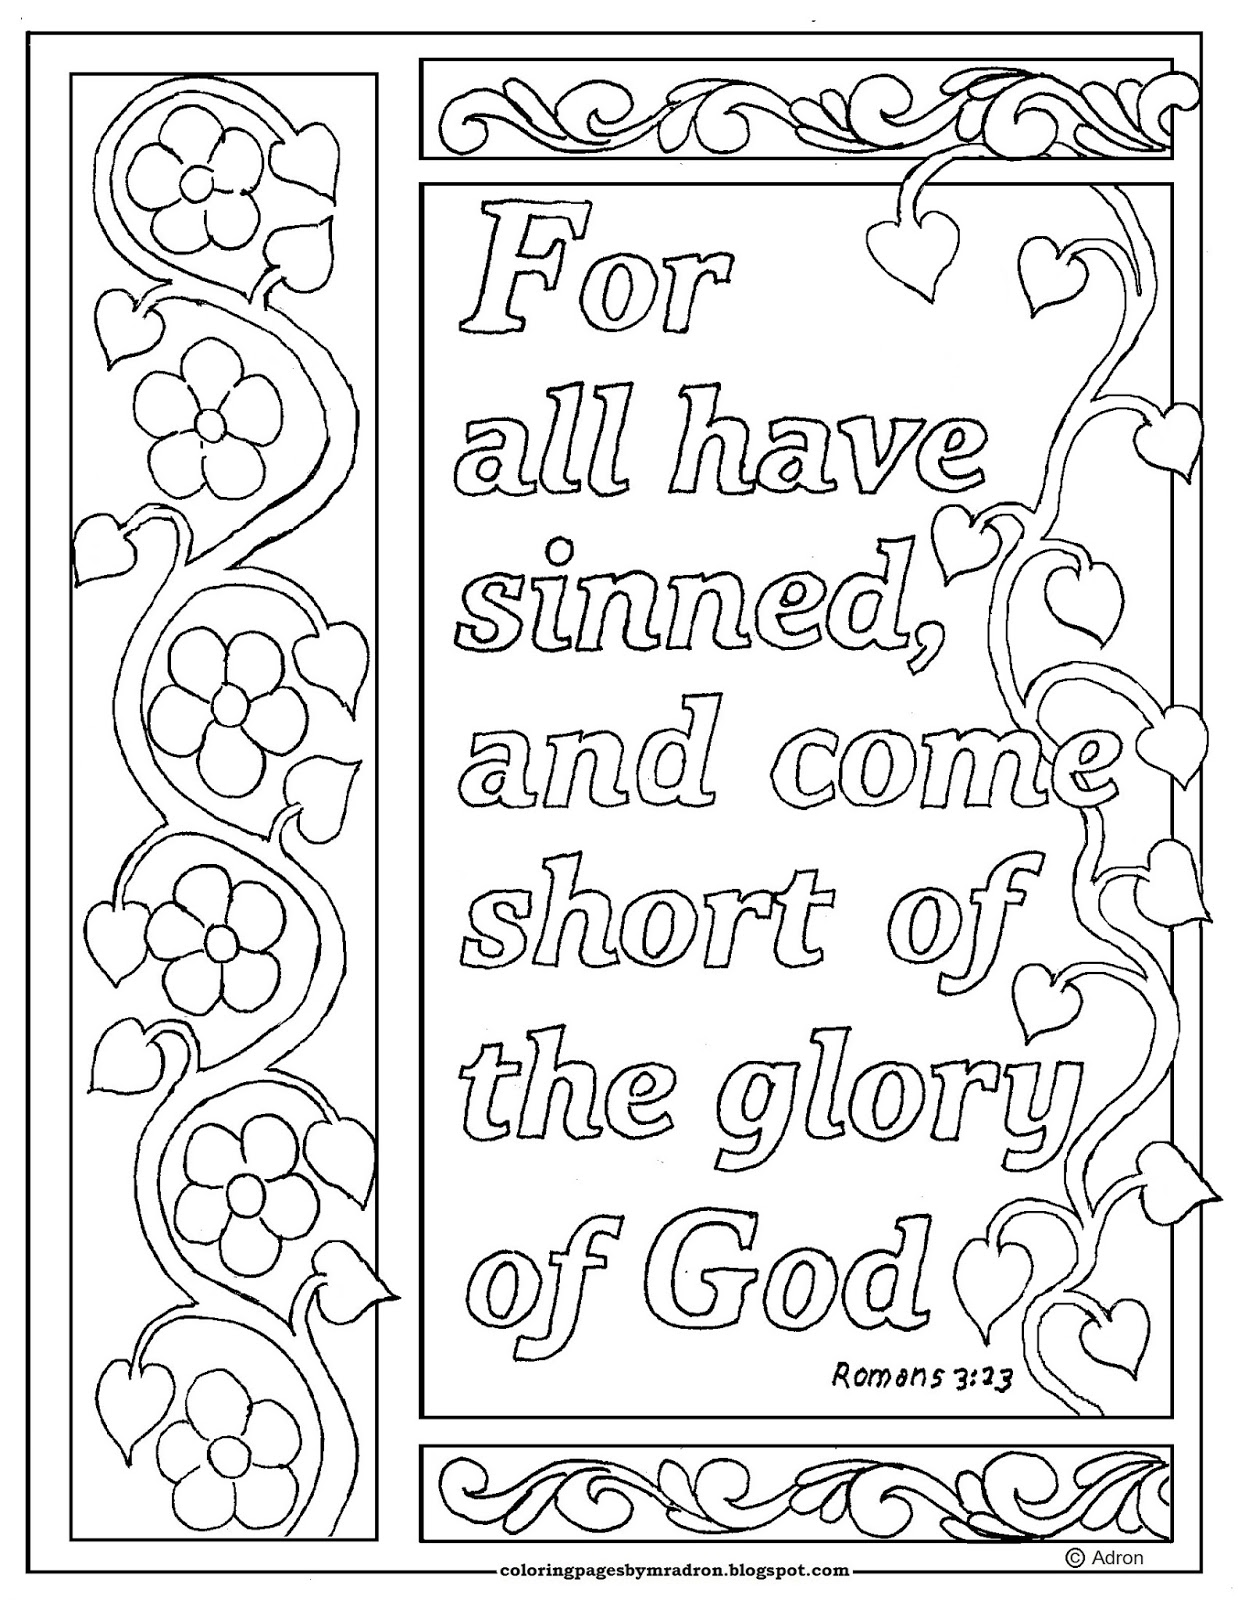 Coloring Pages For Kids By Mr Adron Romans 3 23 Print